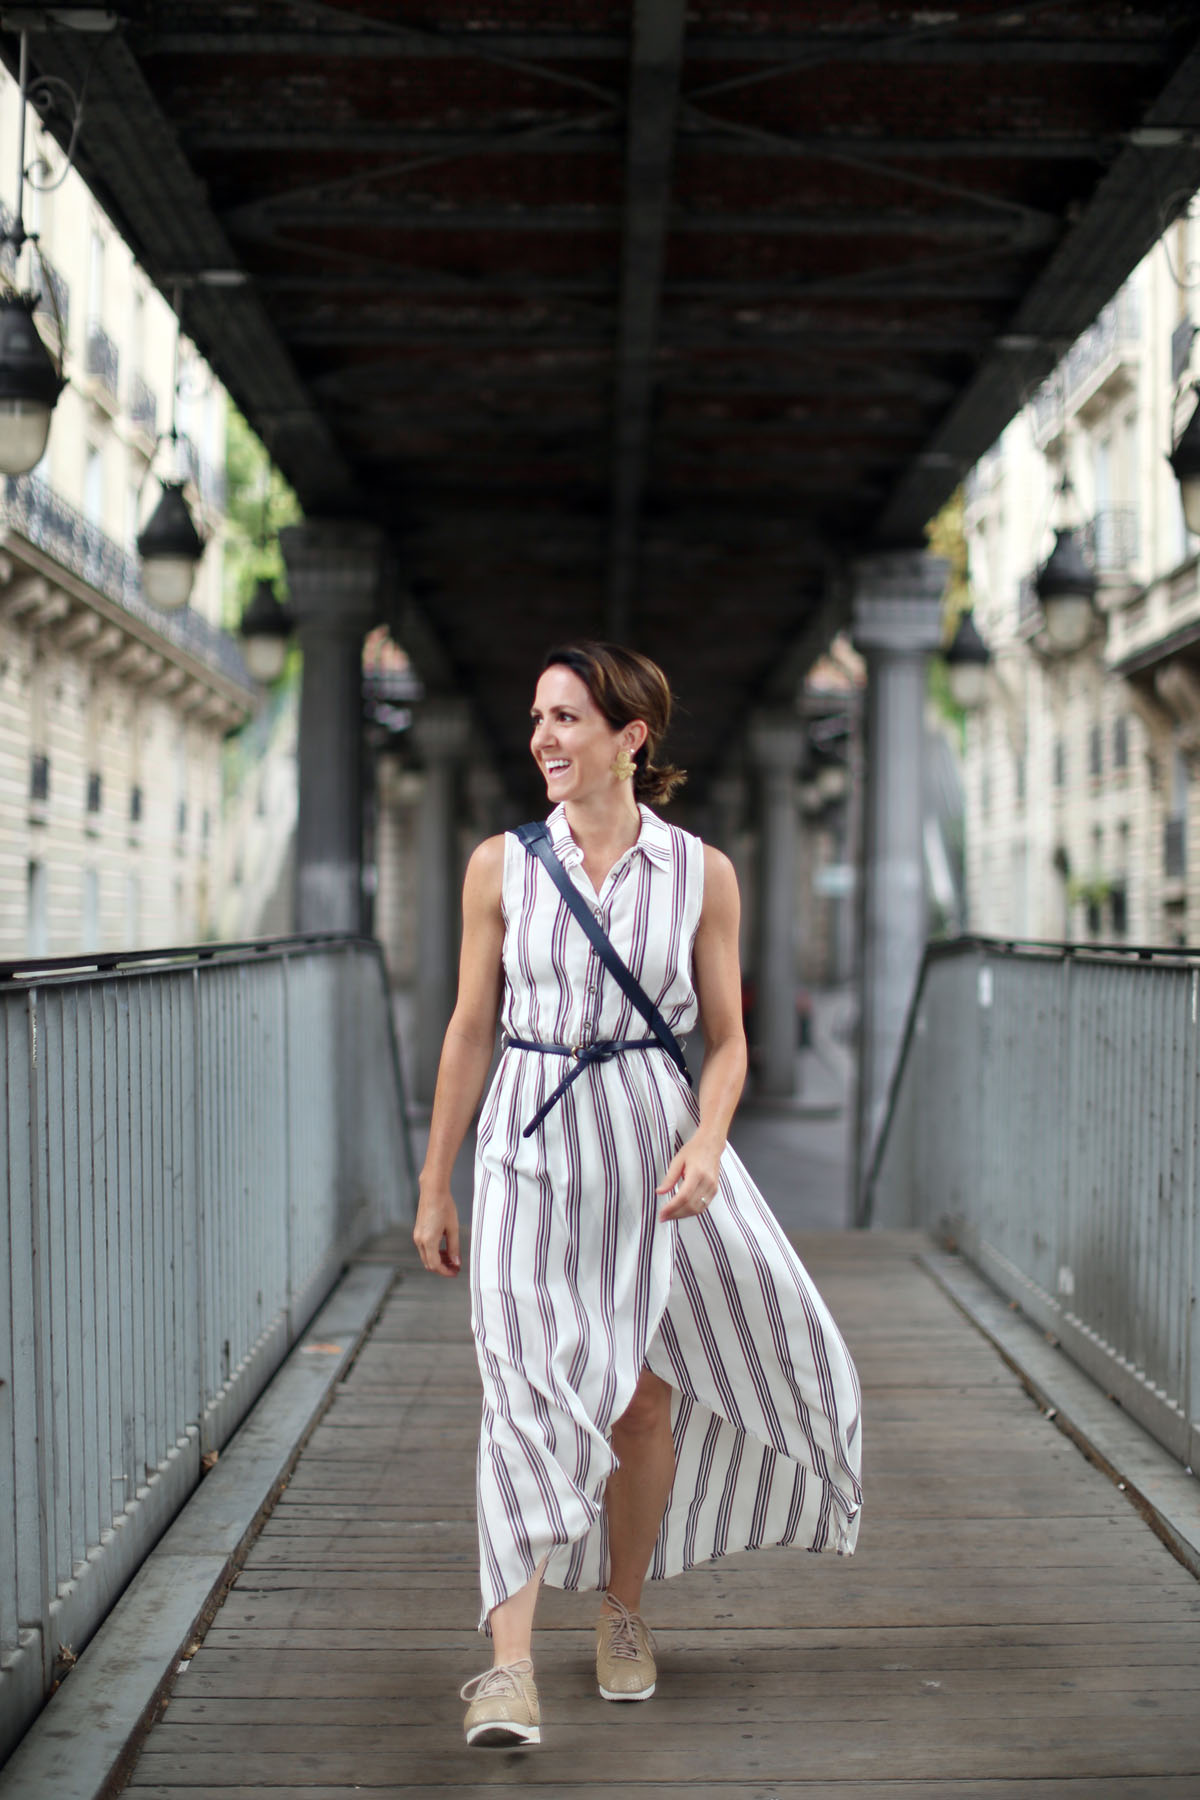 Allison Allie of àllie la mode in Paris.